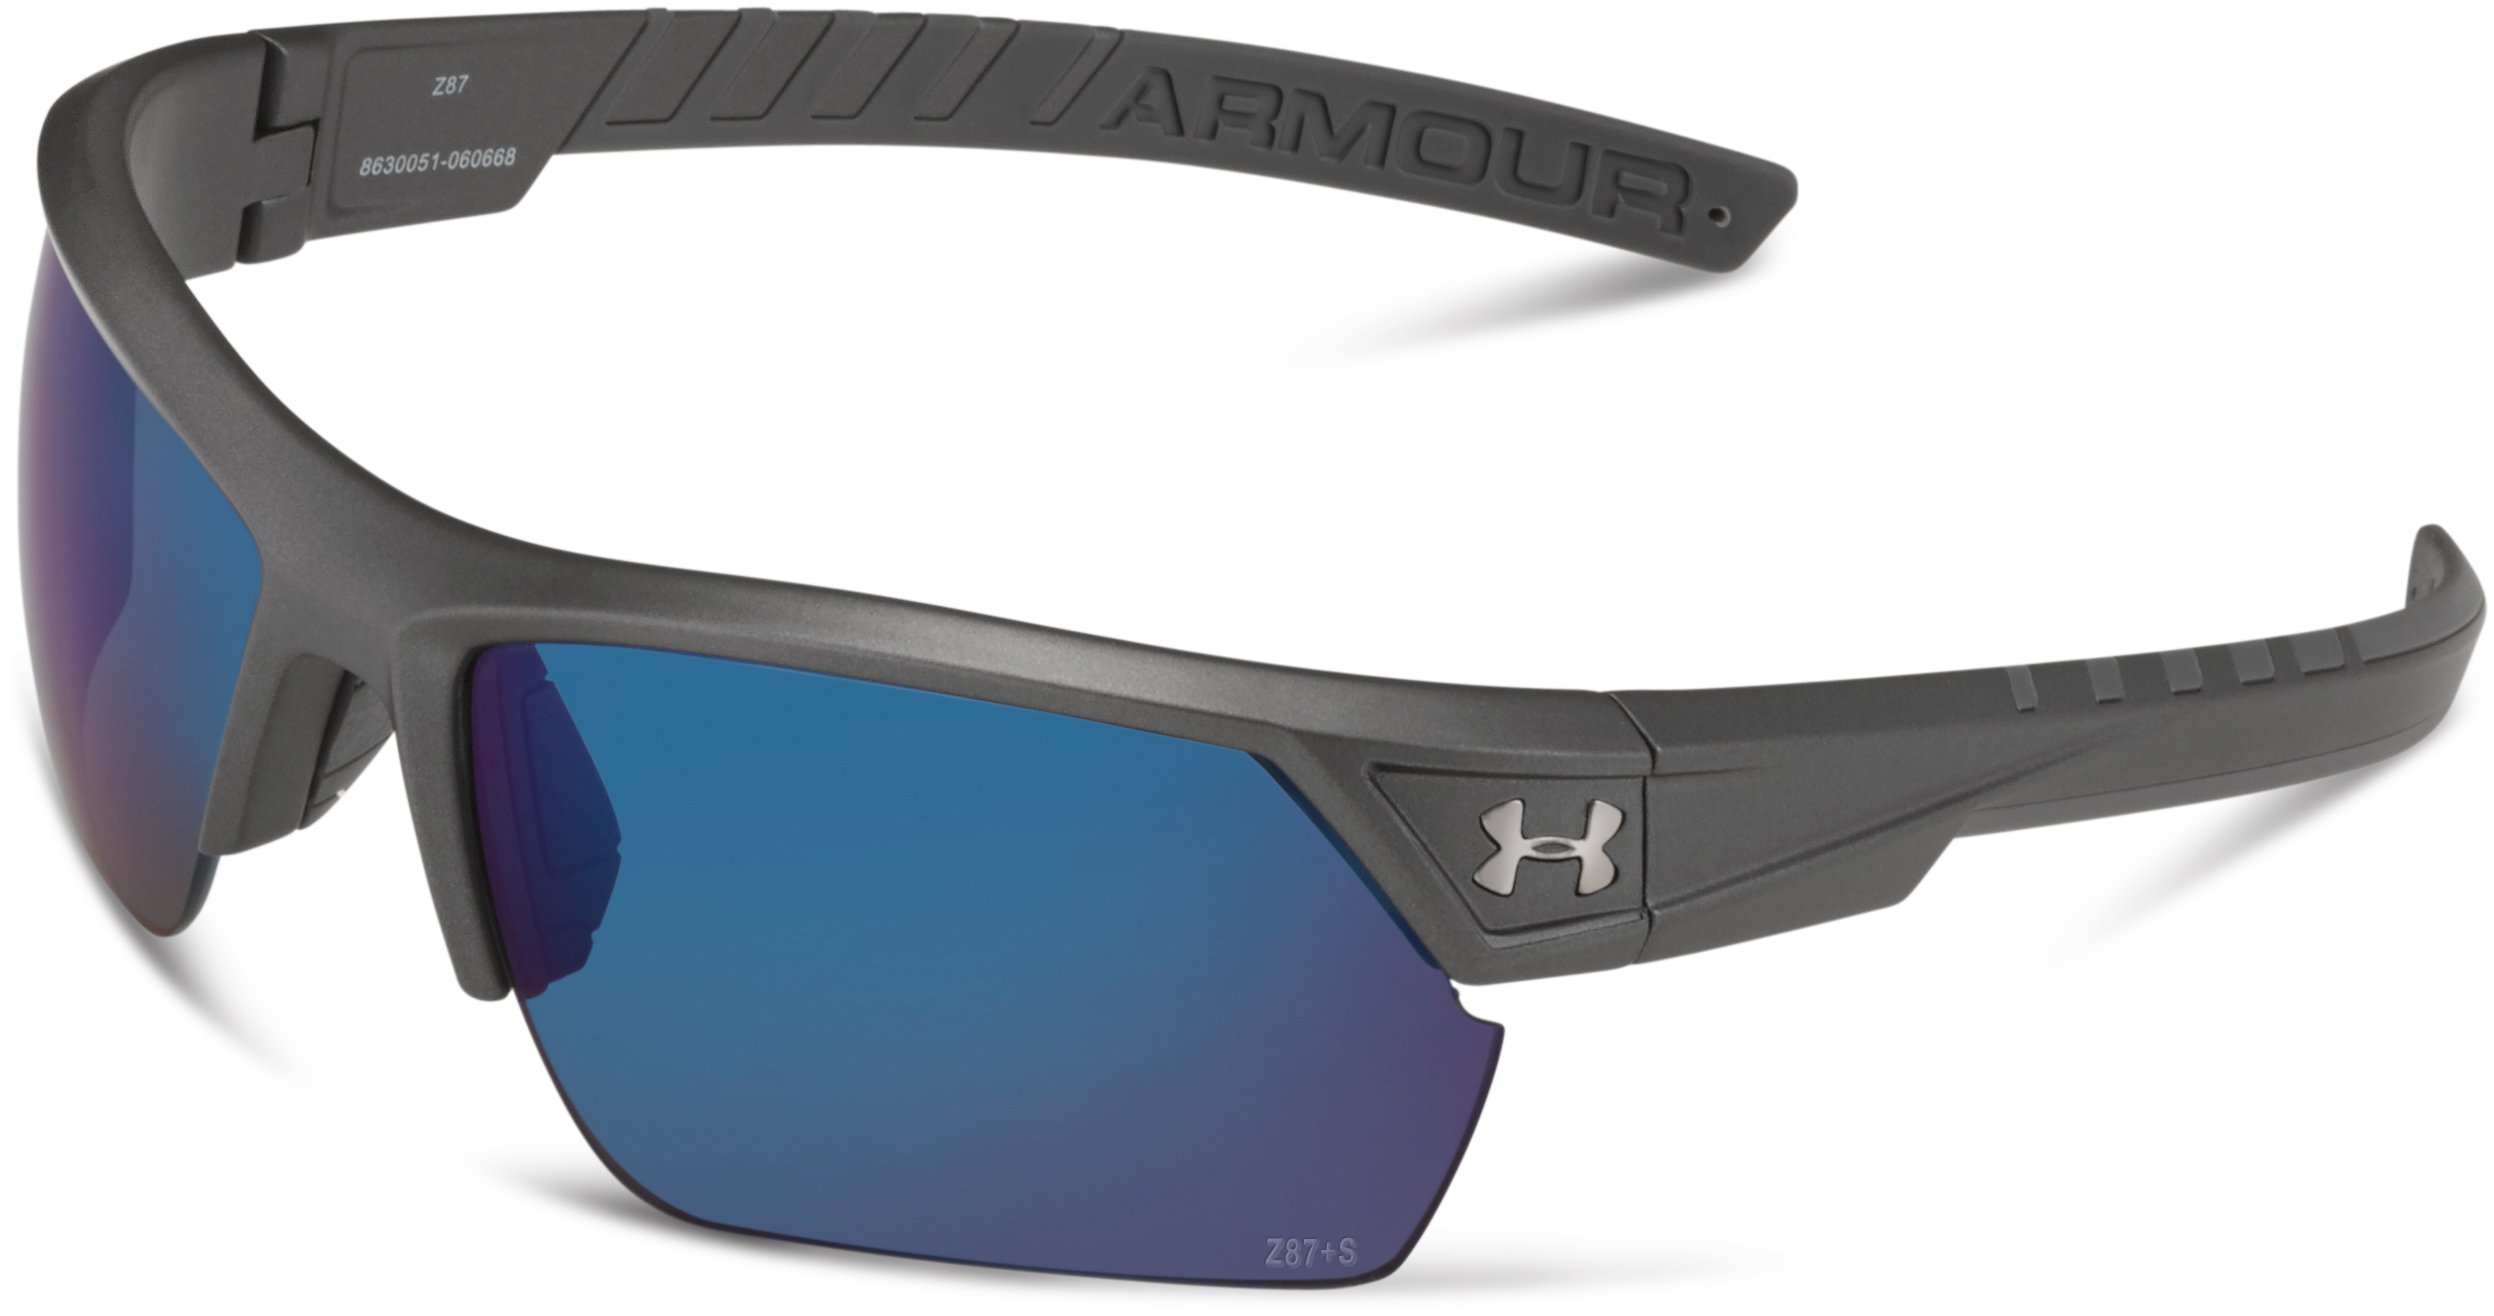 UA Igniter 2.0 Storm Polarized Sunglasses, Satin Carbon